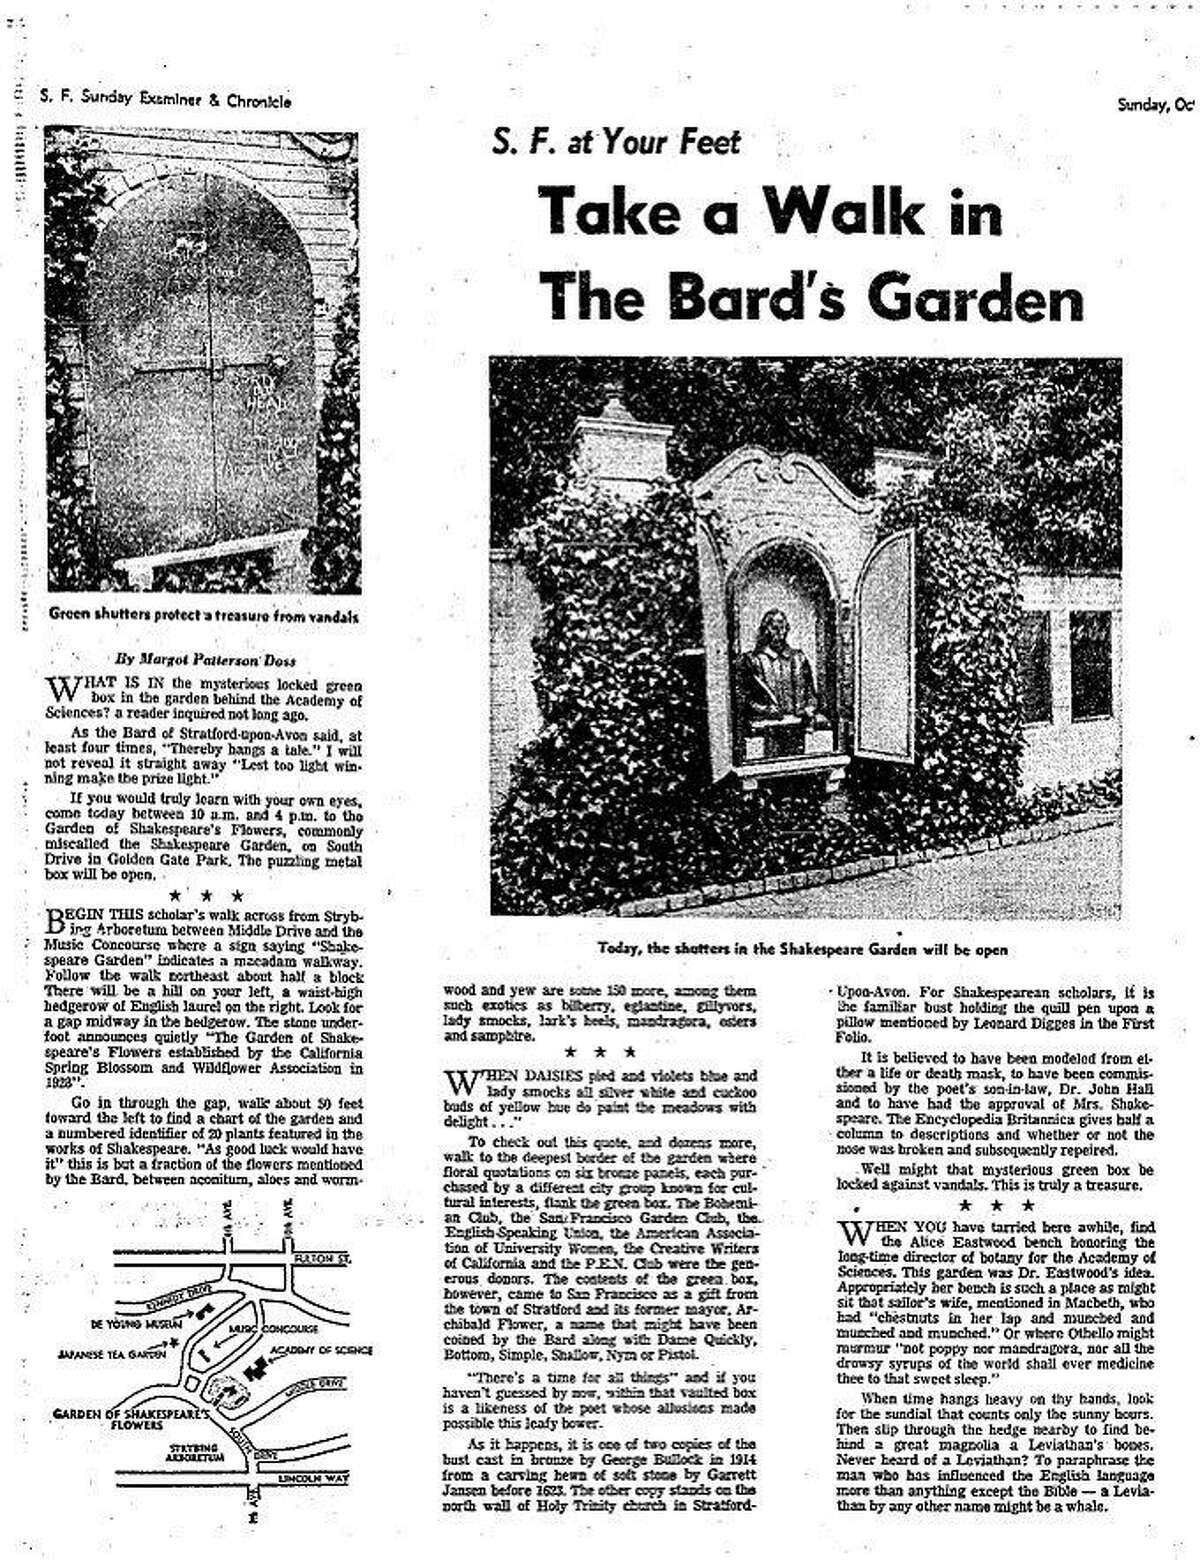 commonly know as Shakespeare's Garden, the Garden of Shakespeare's Flowers is in Golden Gate Park Story ran 10/8/1967